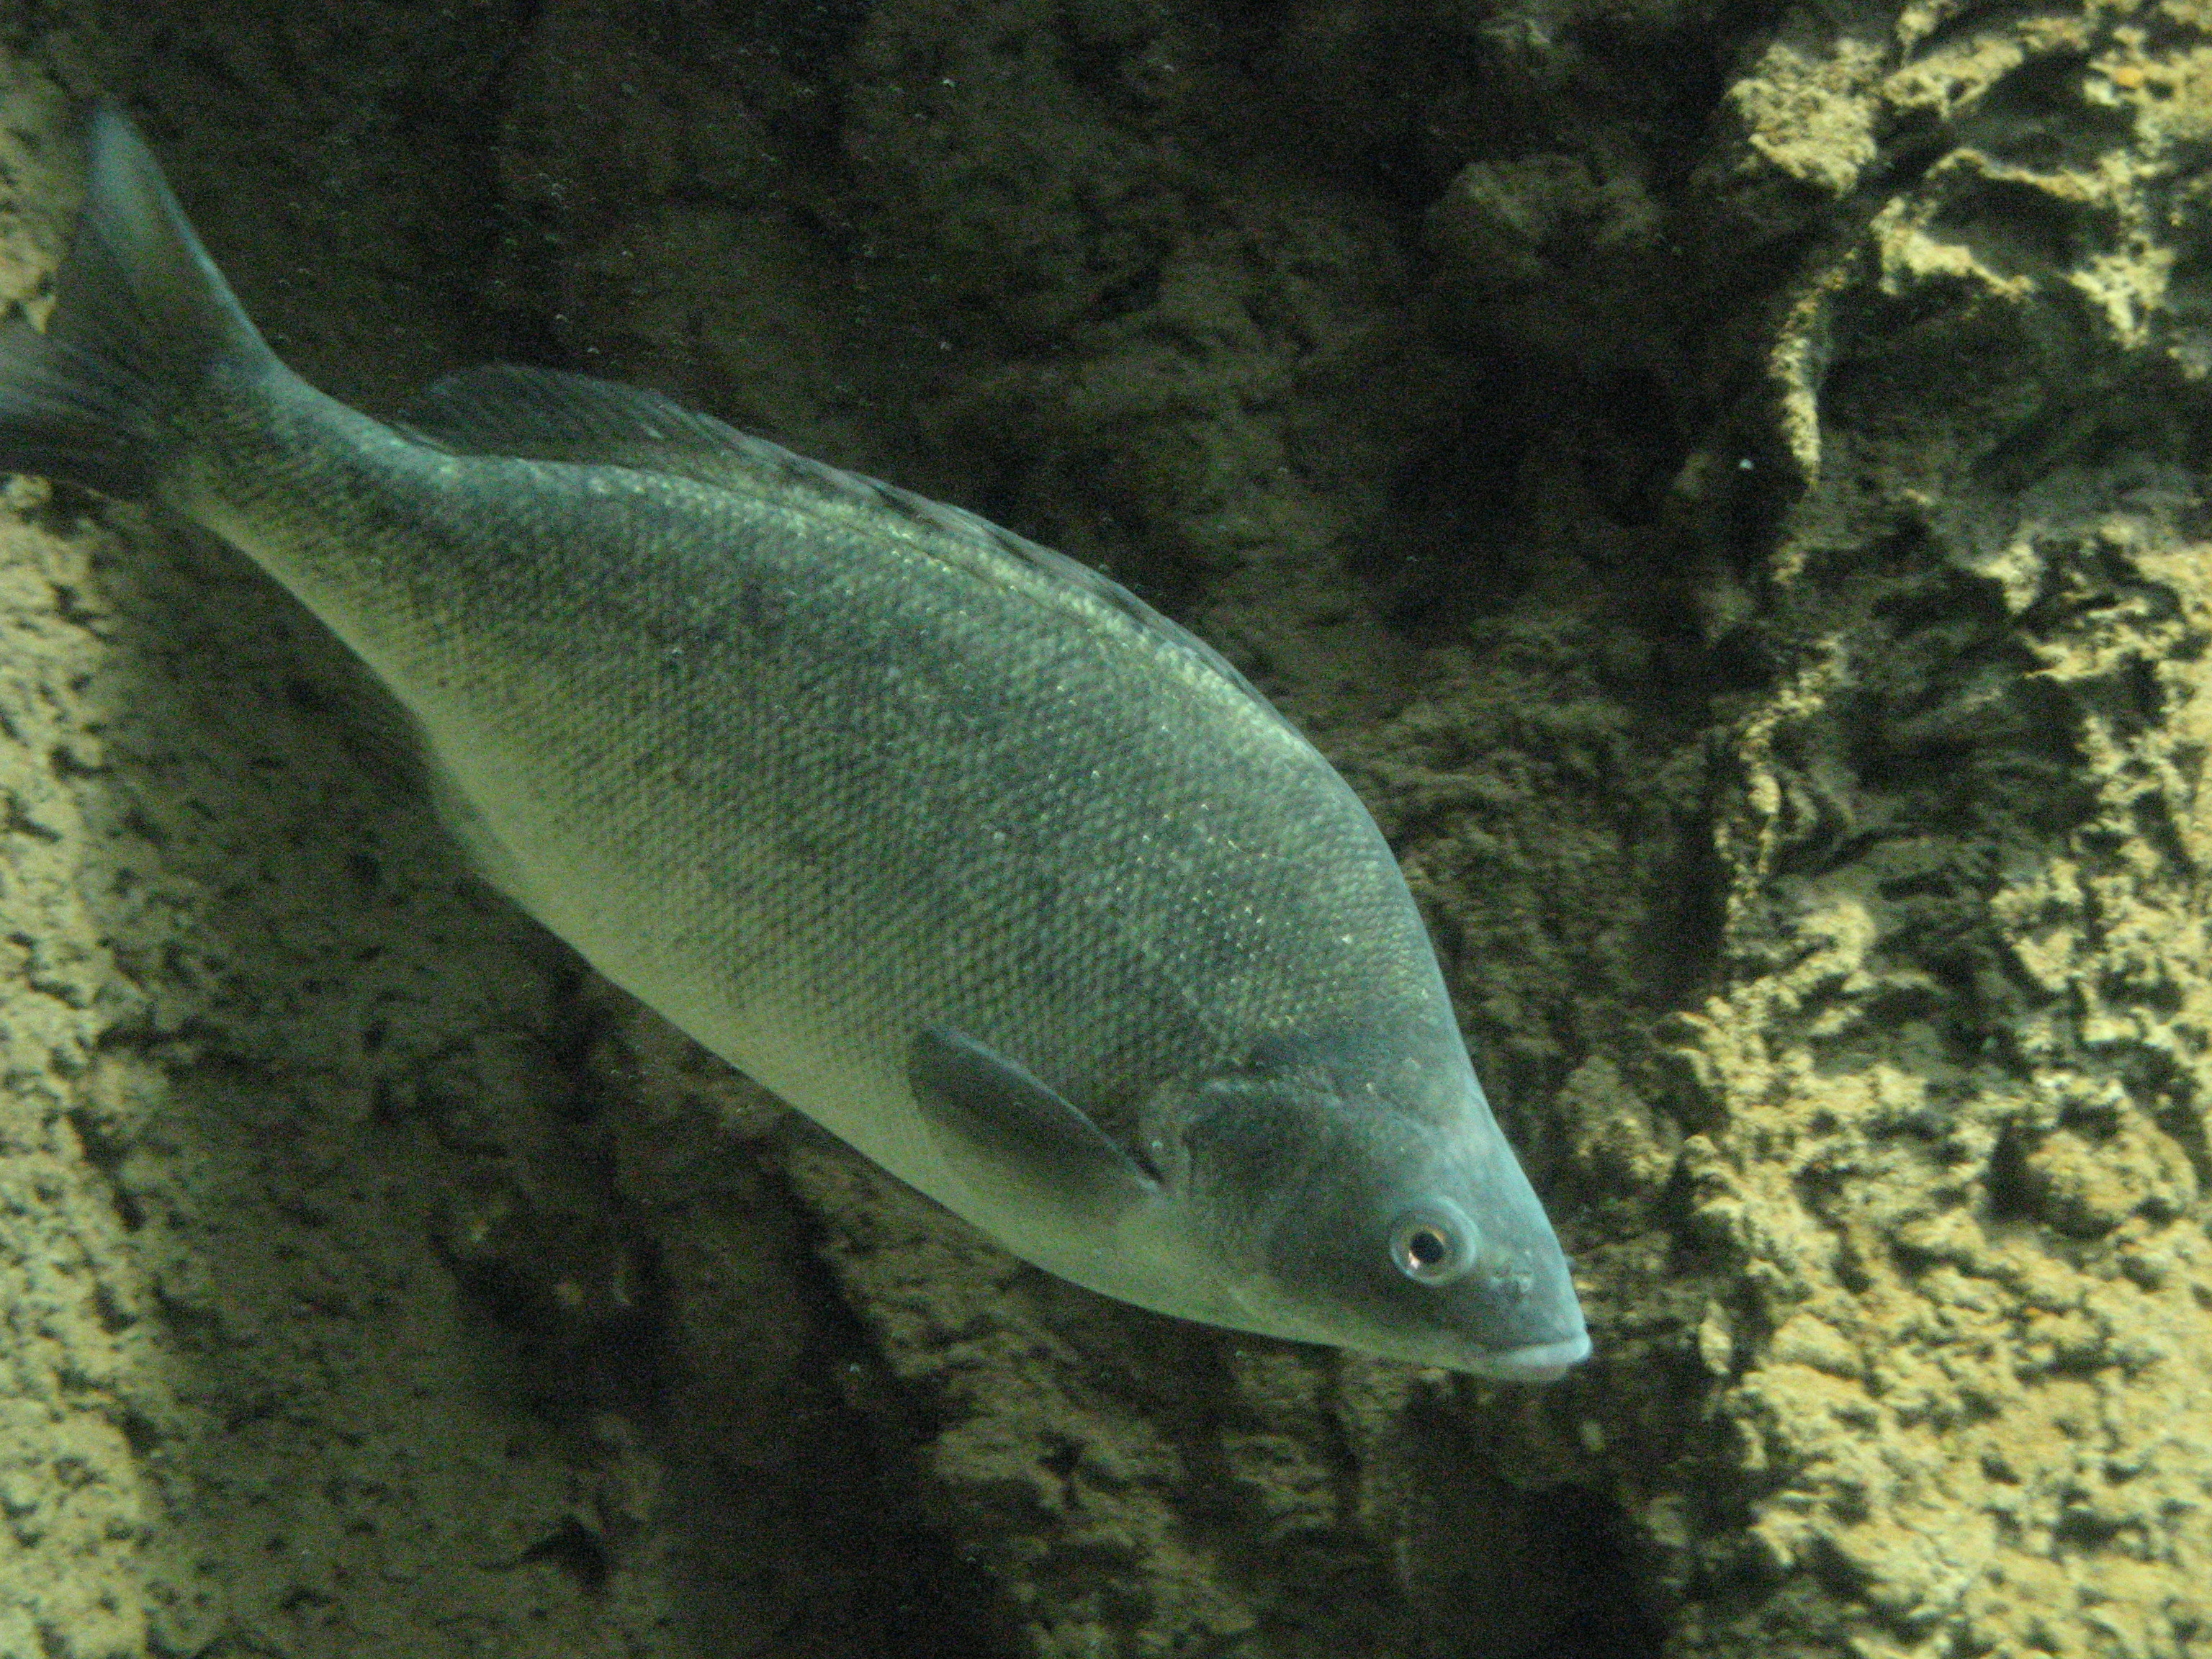 Image of Silver Perch